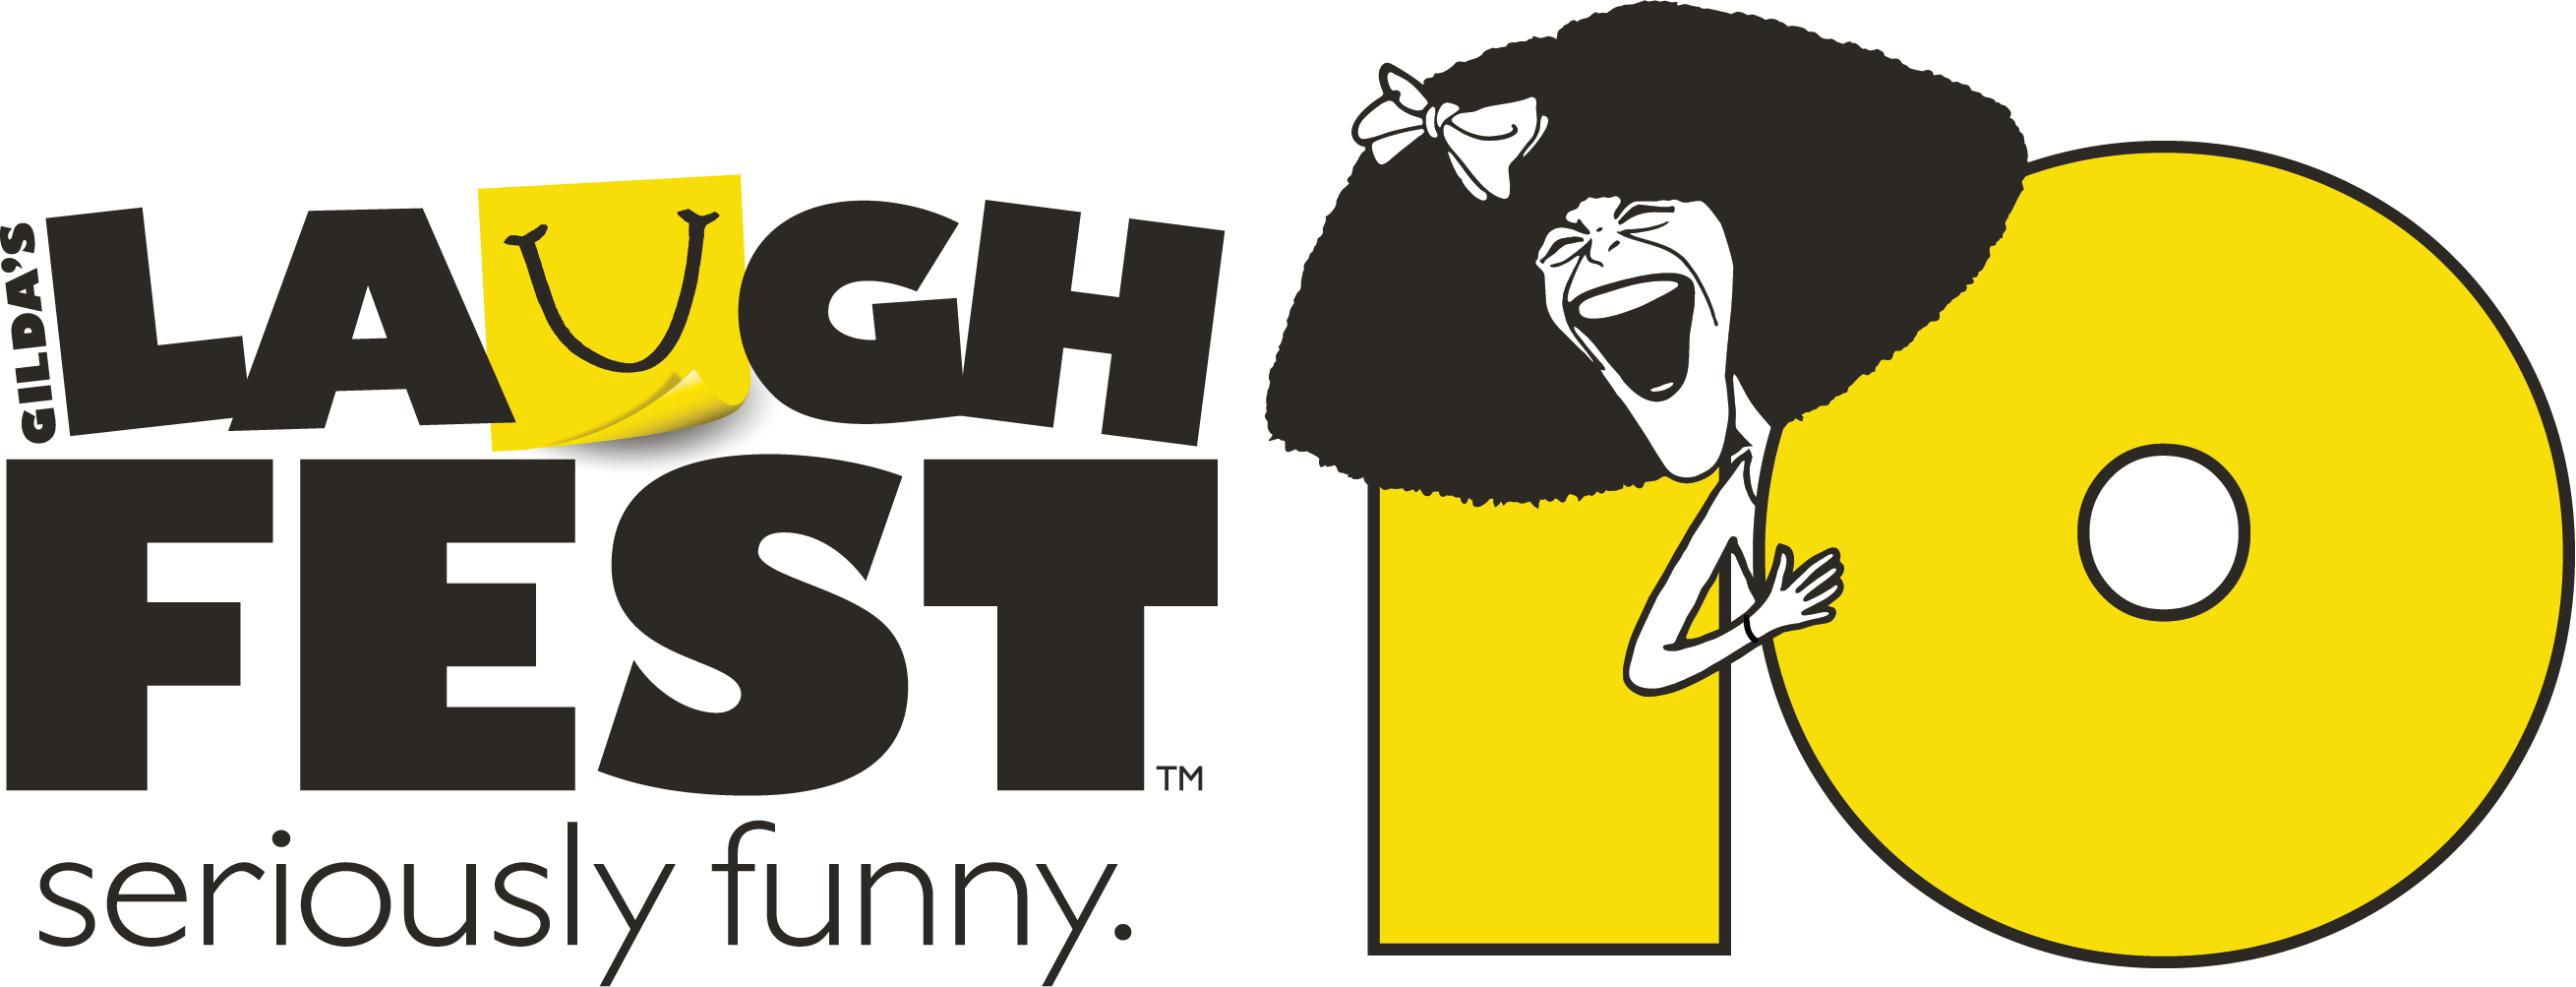 LaughFest 10 Year Anniversary